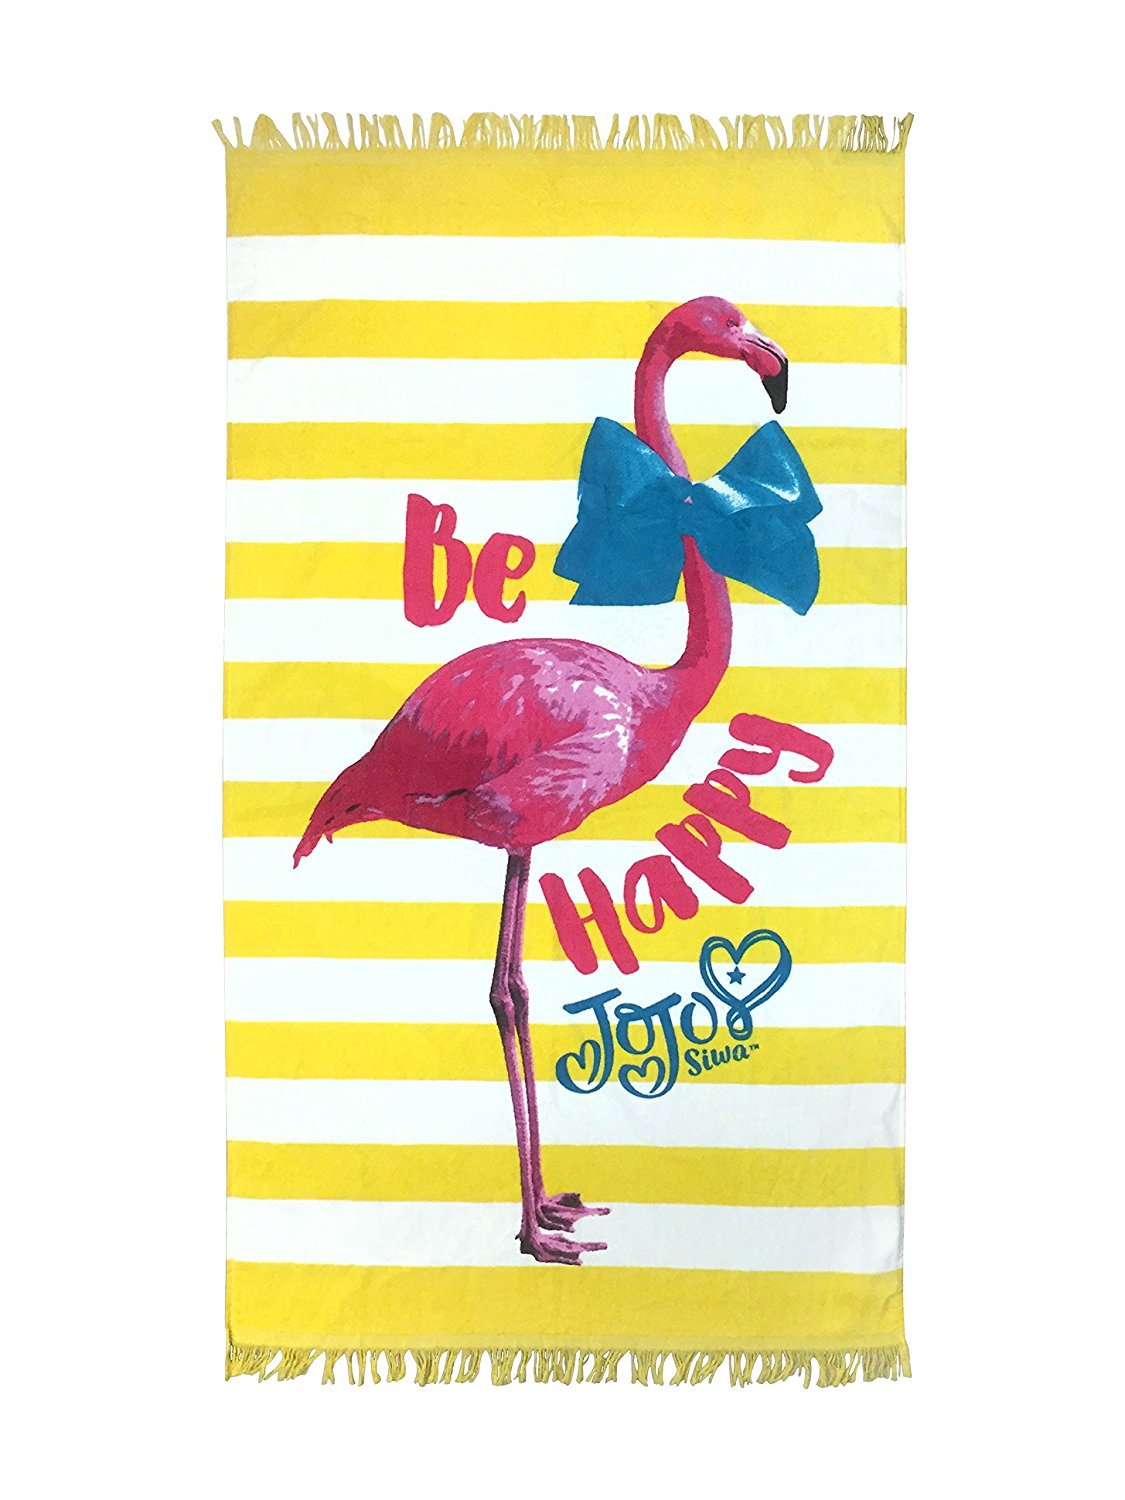 Nickelodeon JoJo Siwa Flamingo Yellow Cotton Bath/Pool/Beach Towel (Official JoJo Siwa Product)